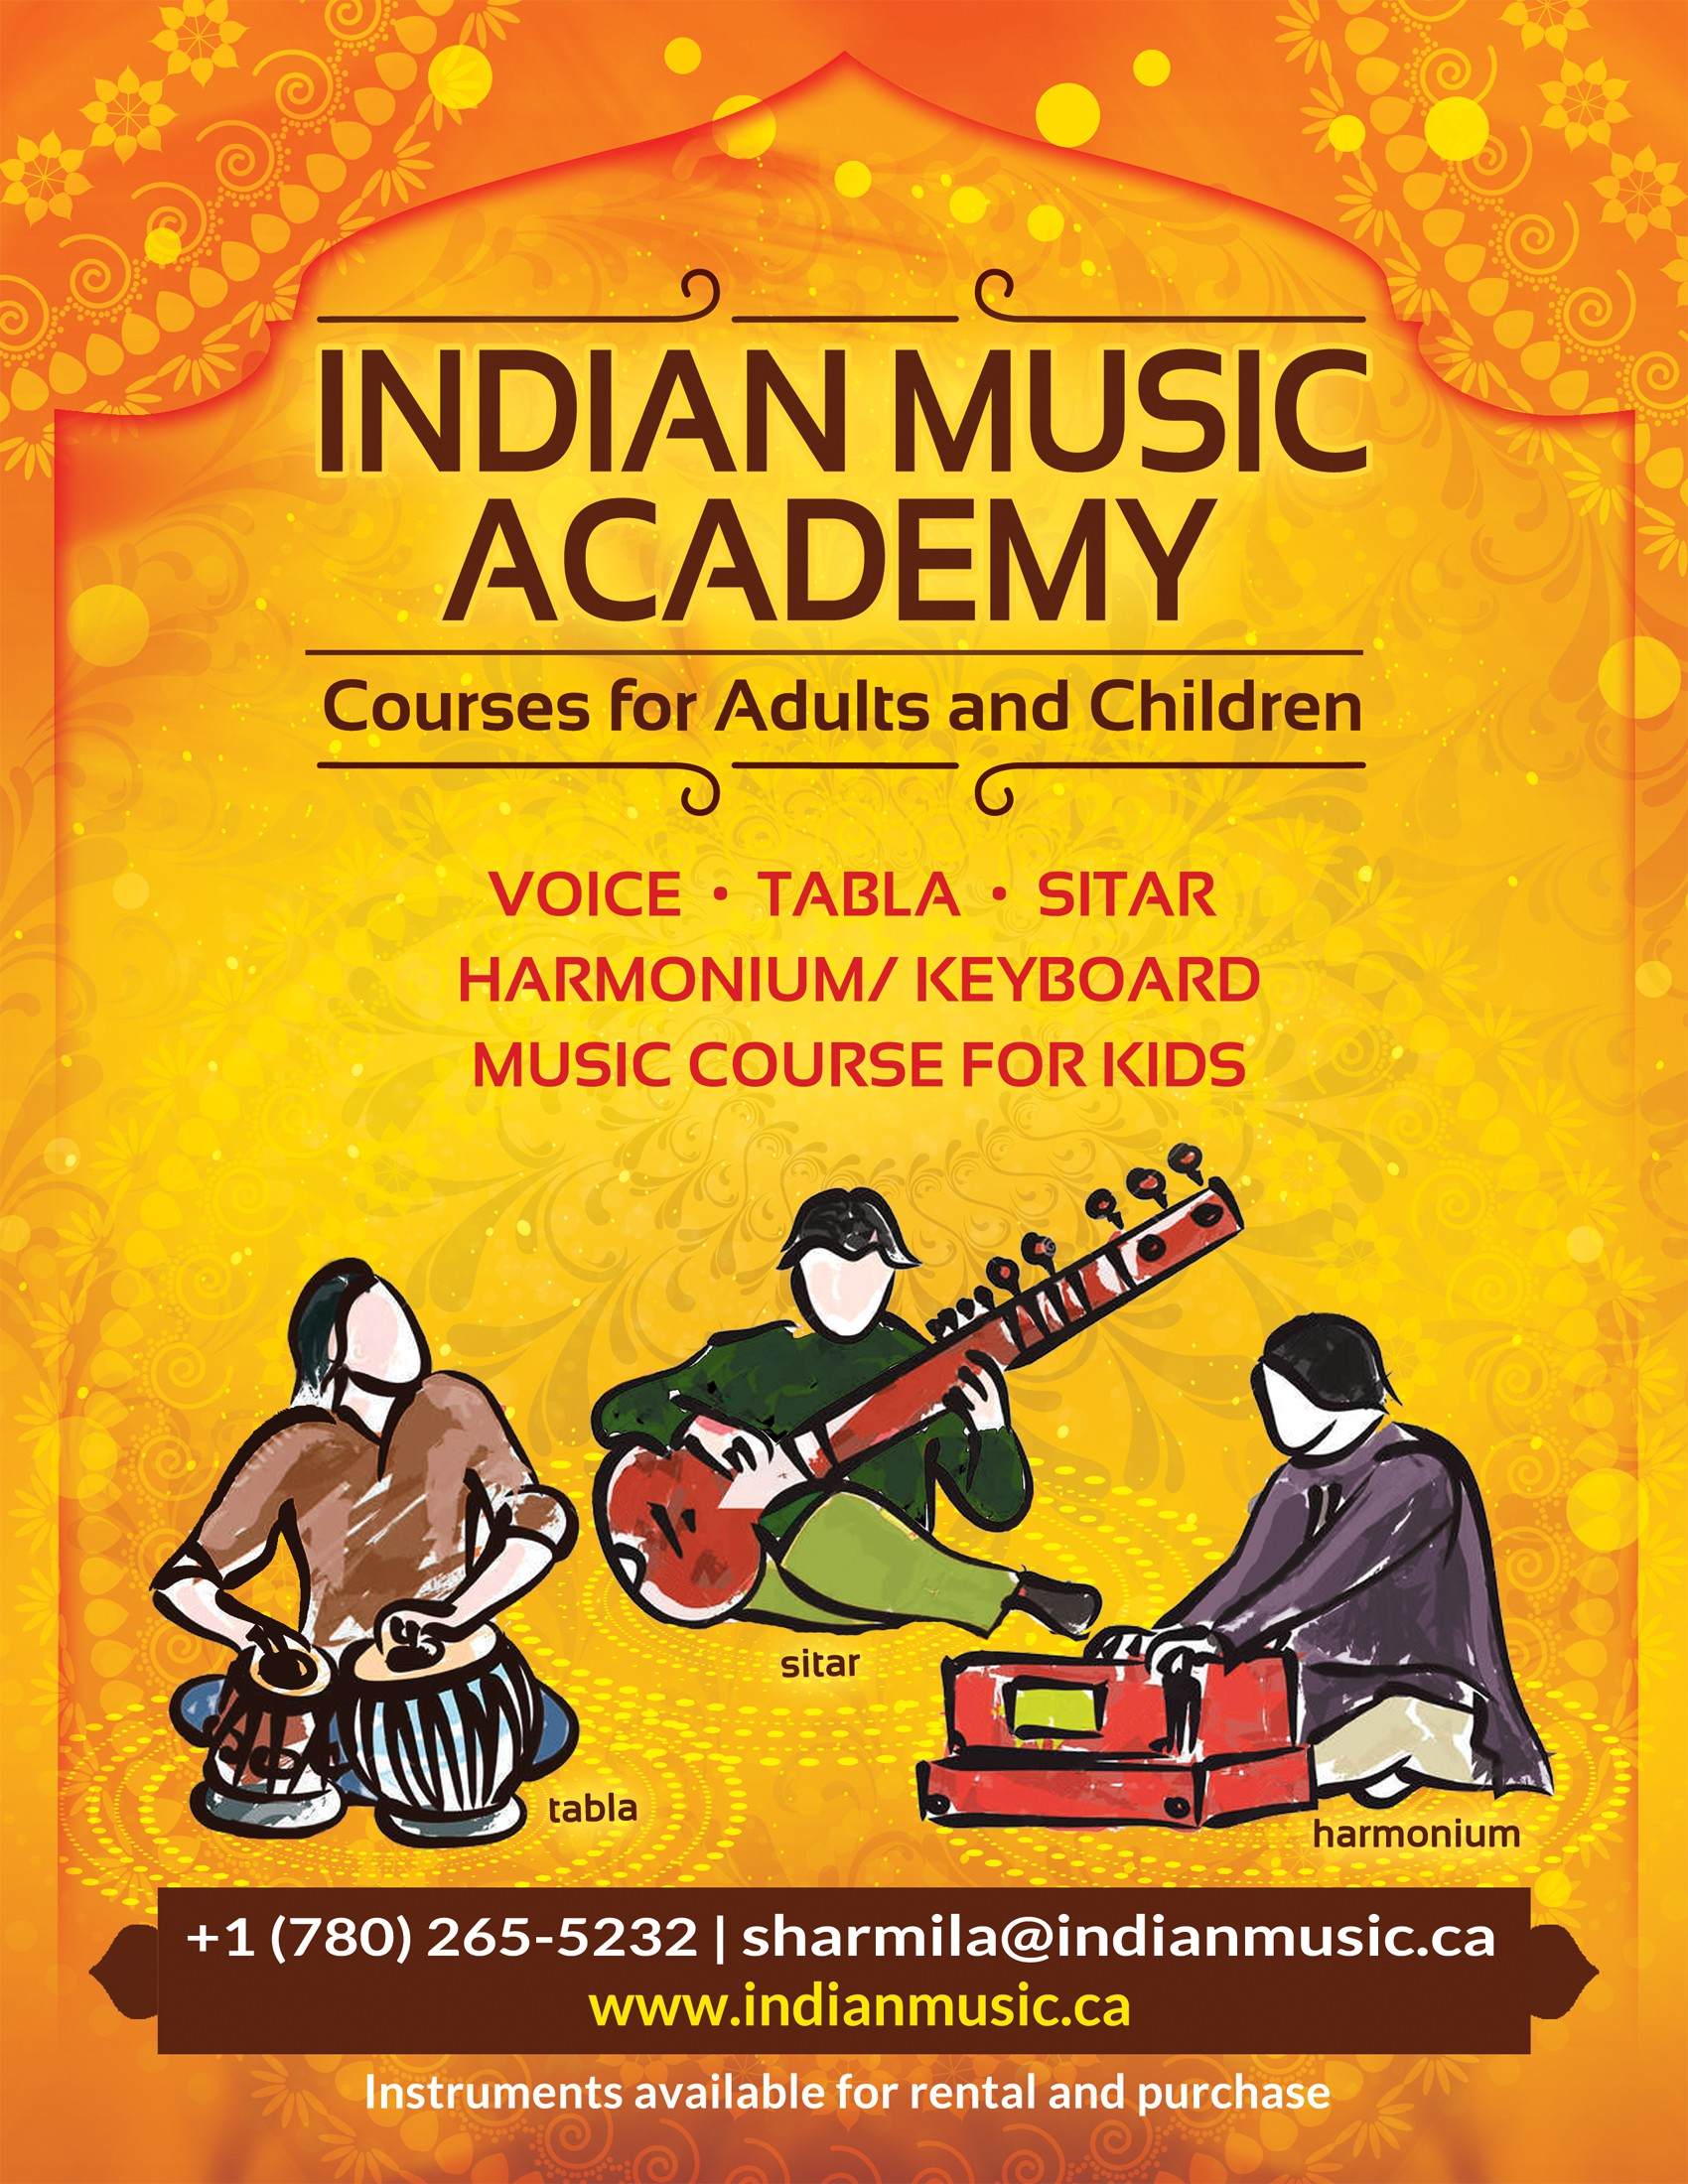 Create an inspiring professional poster for an Indian Music School